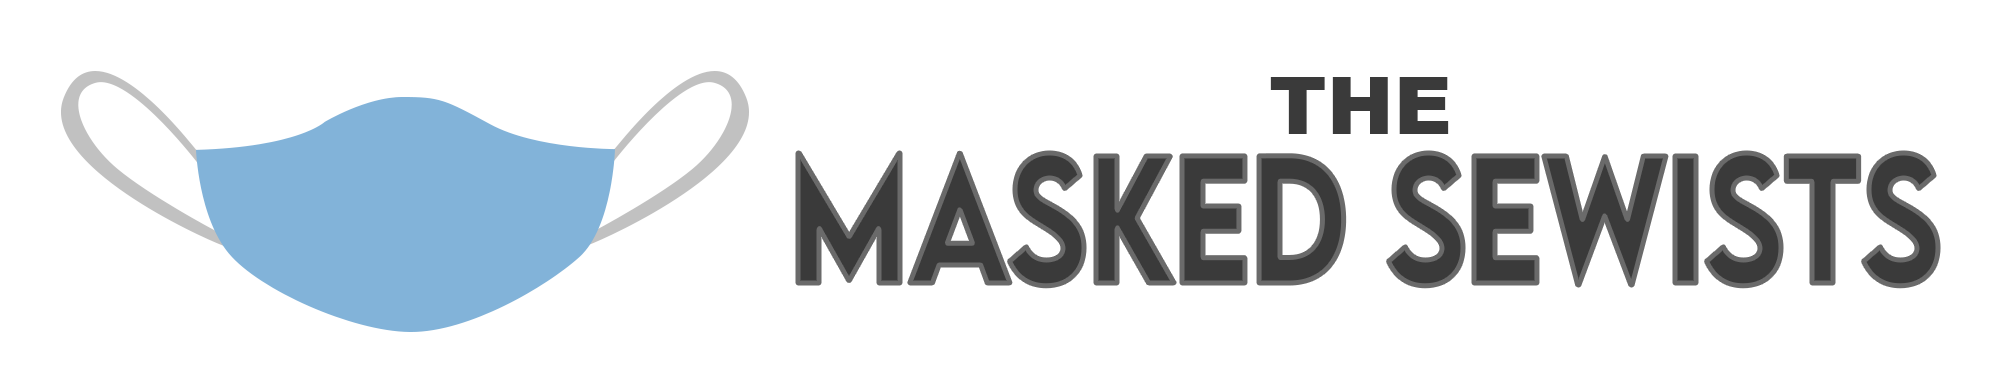 The Masked Sewists